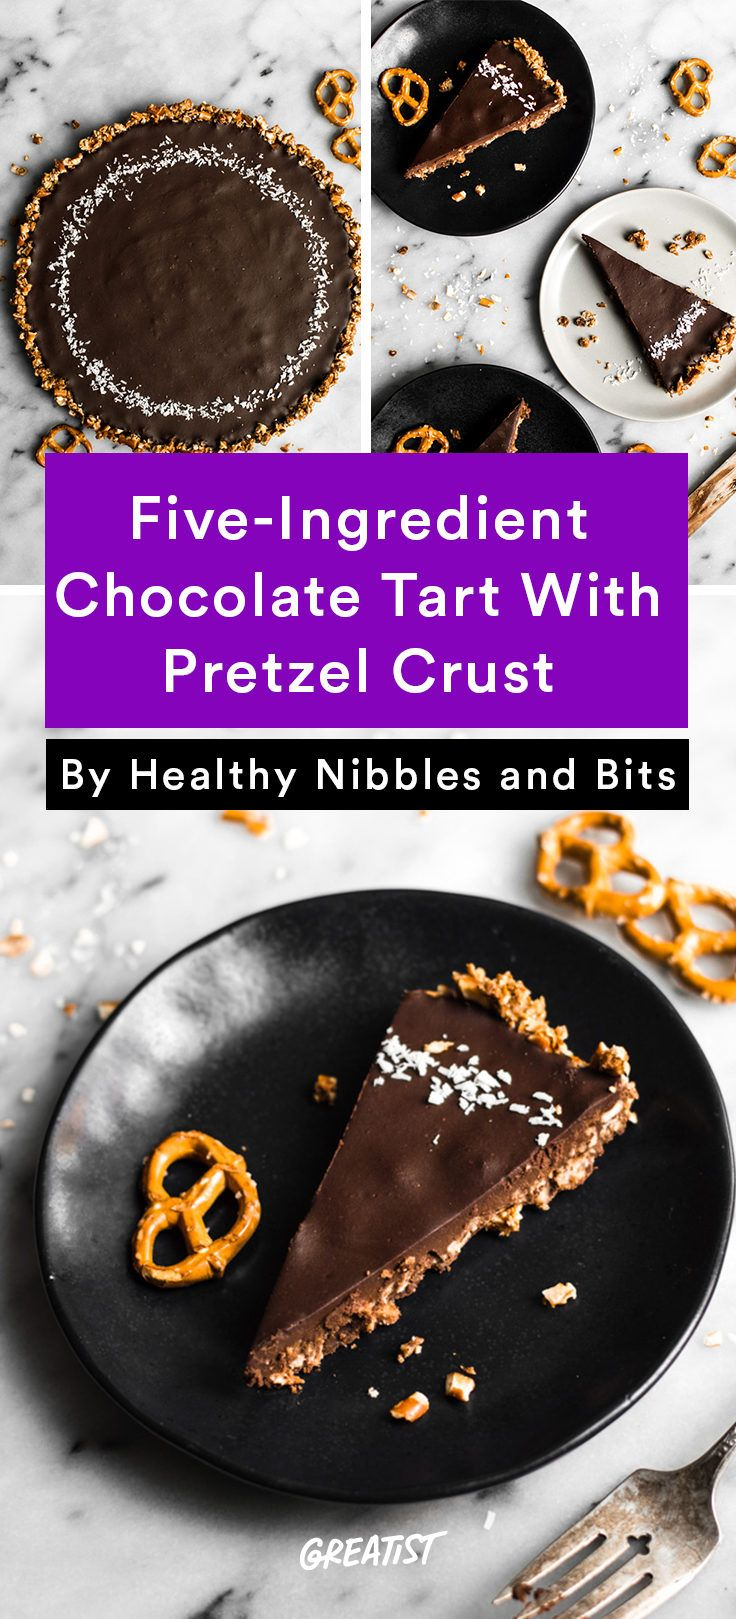 4. 5-Ingredient Chocolate Tart With Pretzel Crust #greatist http://greatist.com/eat/gluten-free-holiday-desserts-that-will-save-you-some-cash